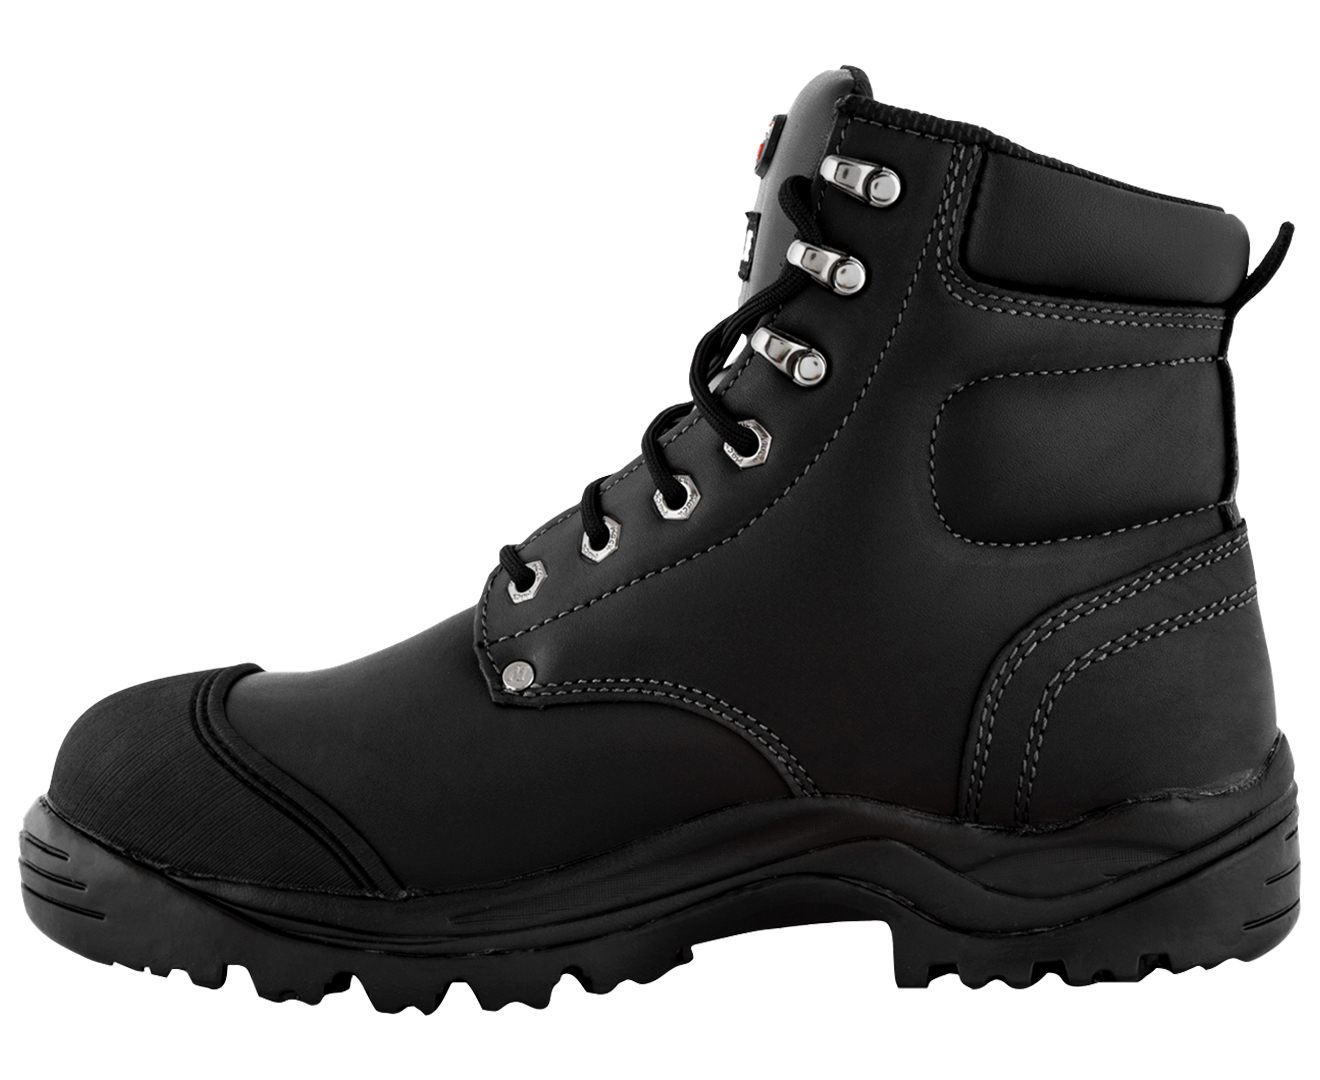 5edfce2c87b7 Mack Men s Stirling Steel Safety Boot - Black